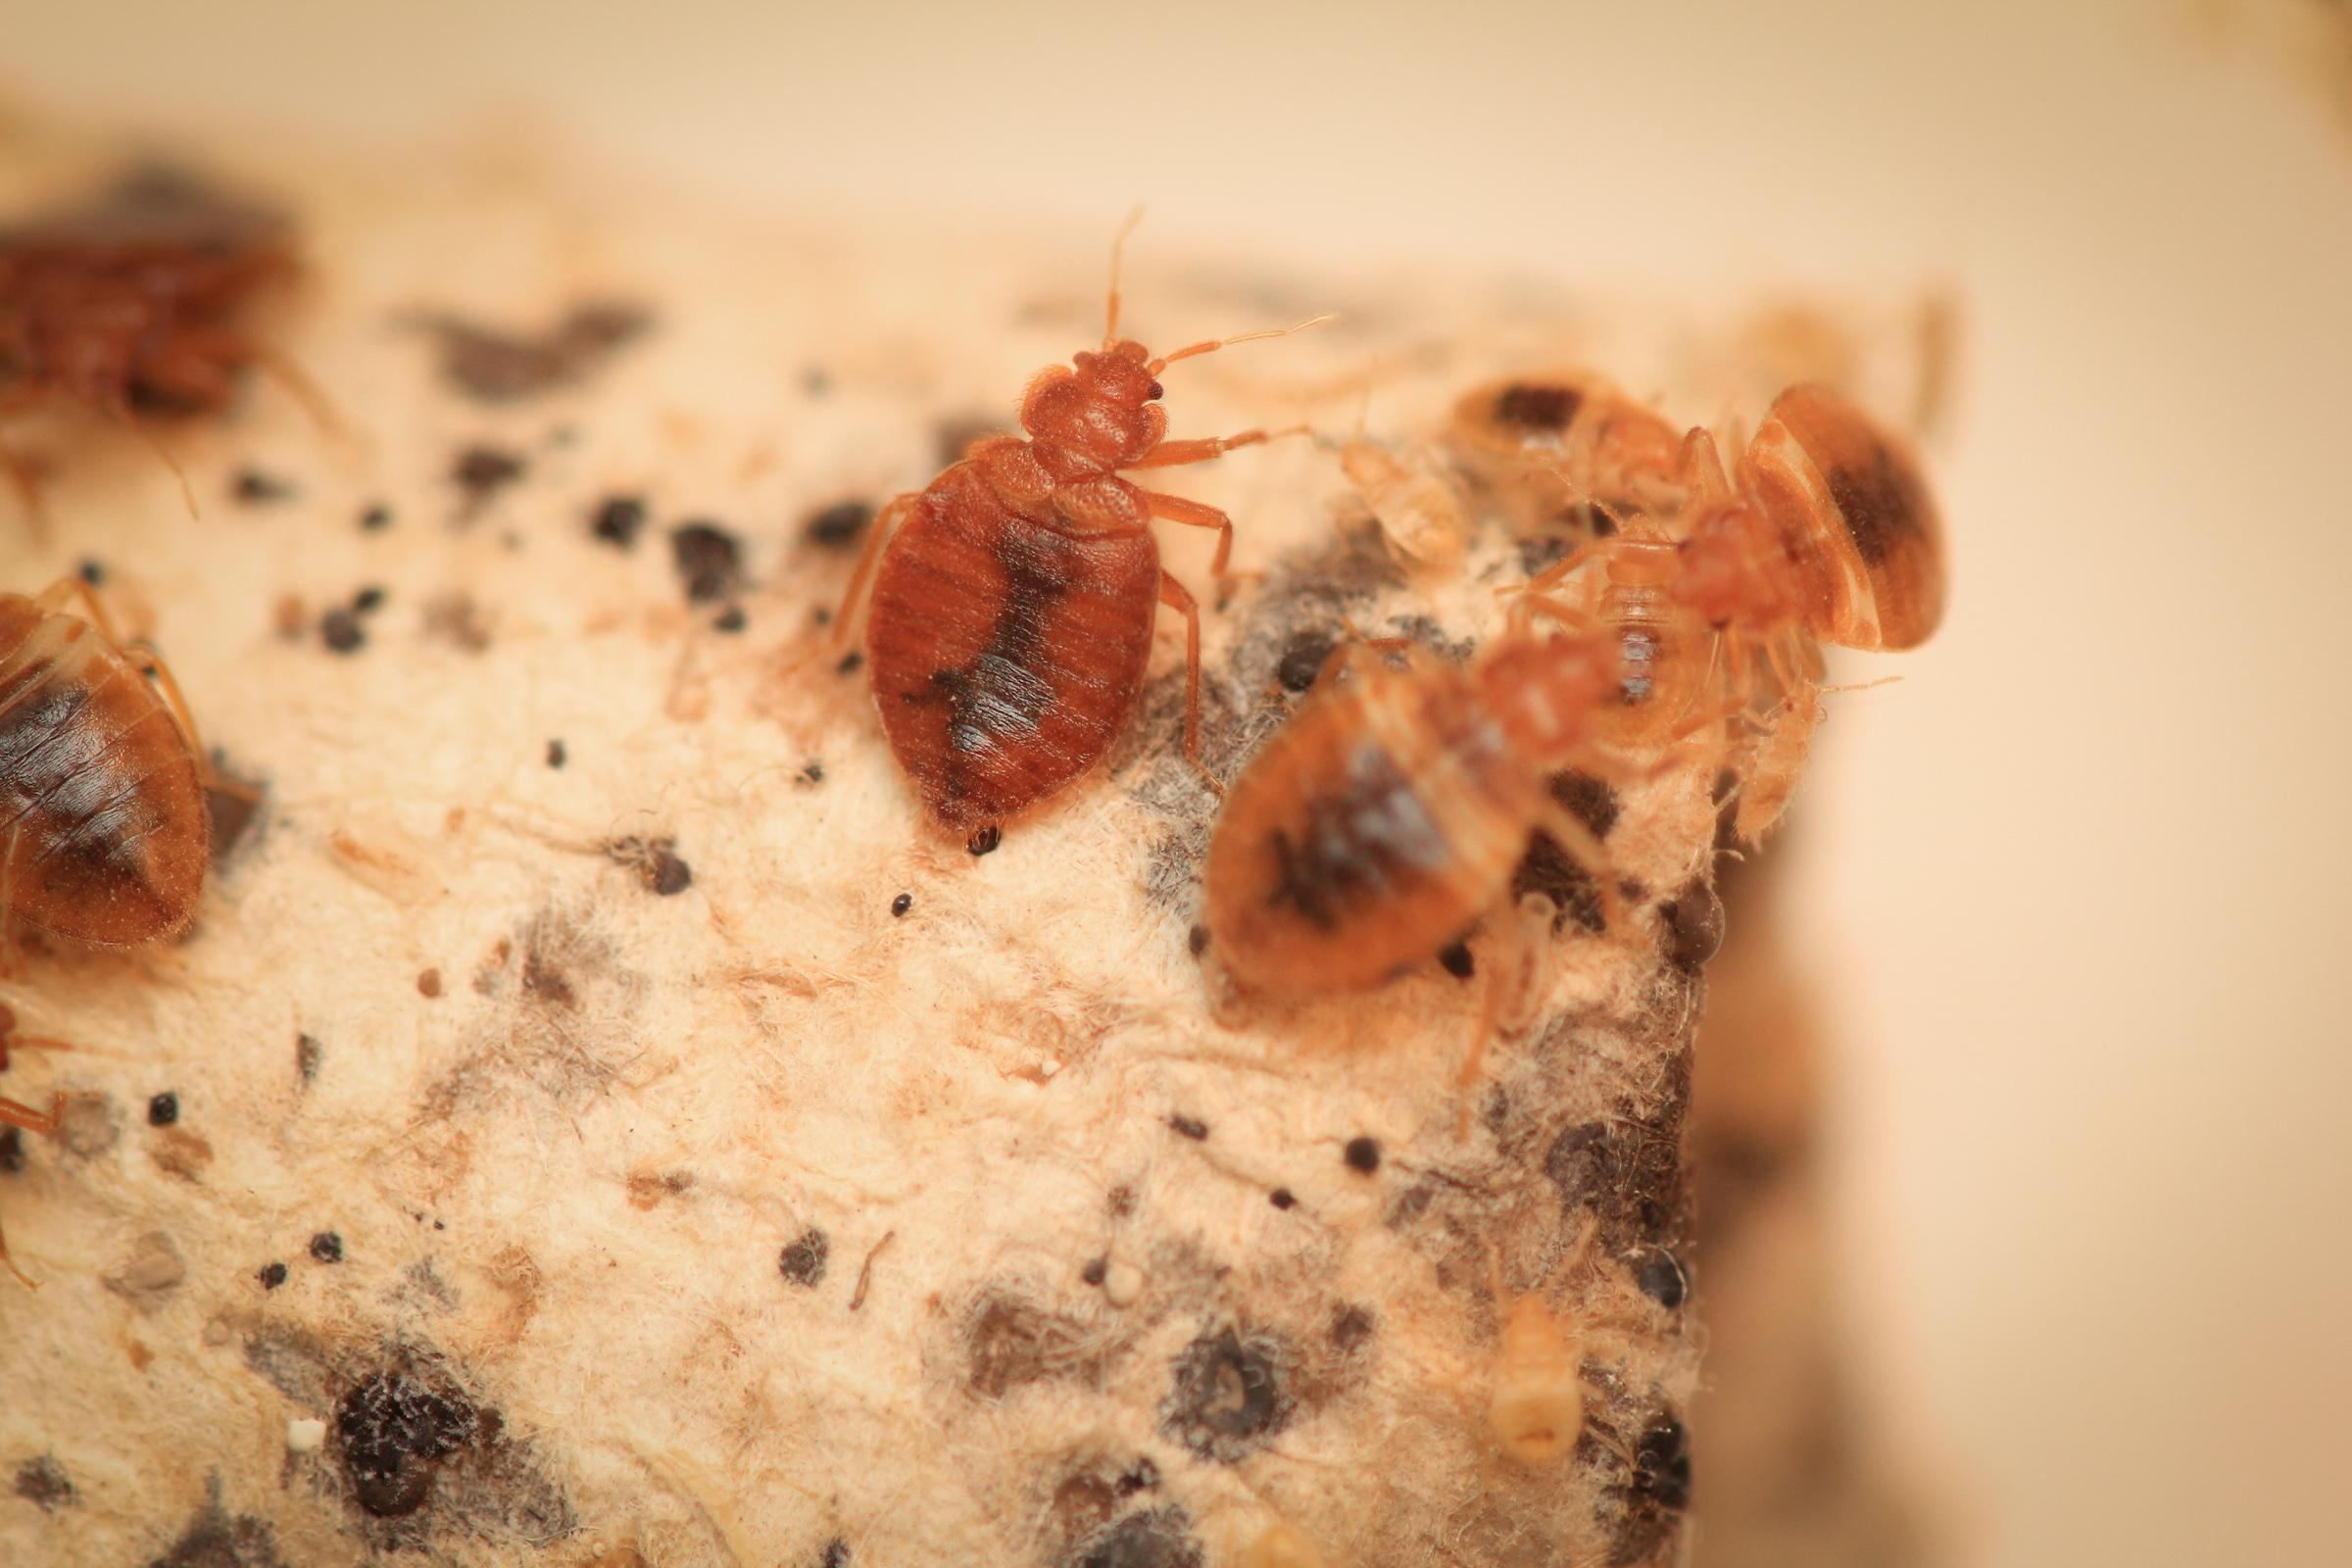 pest bugs come common get you bedbugs do hacks does where of causes bed from how